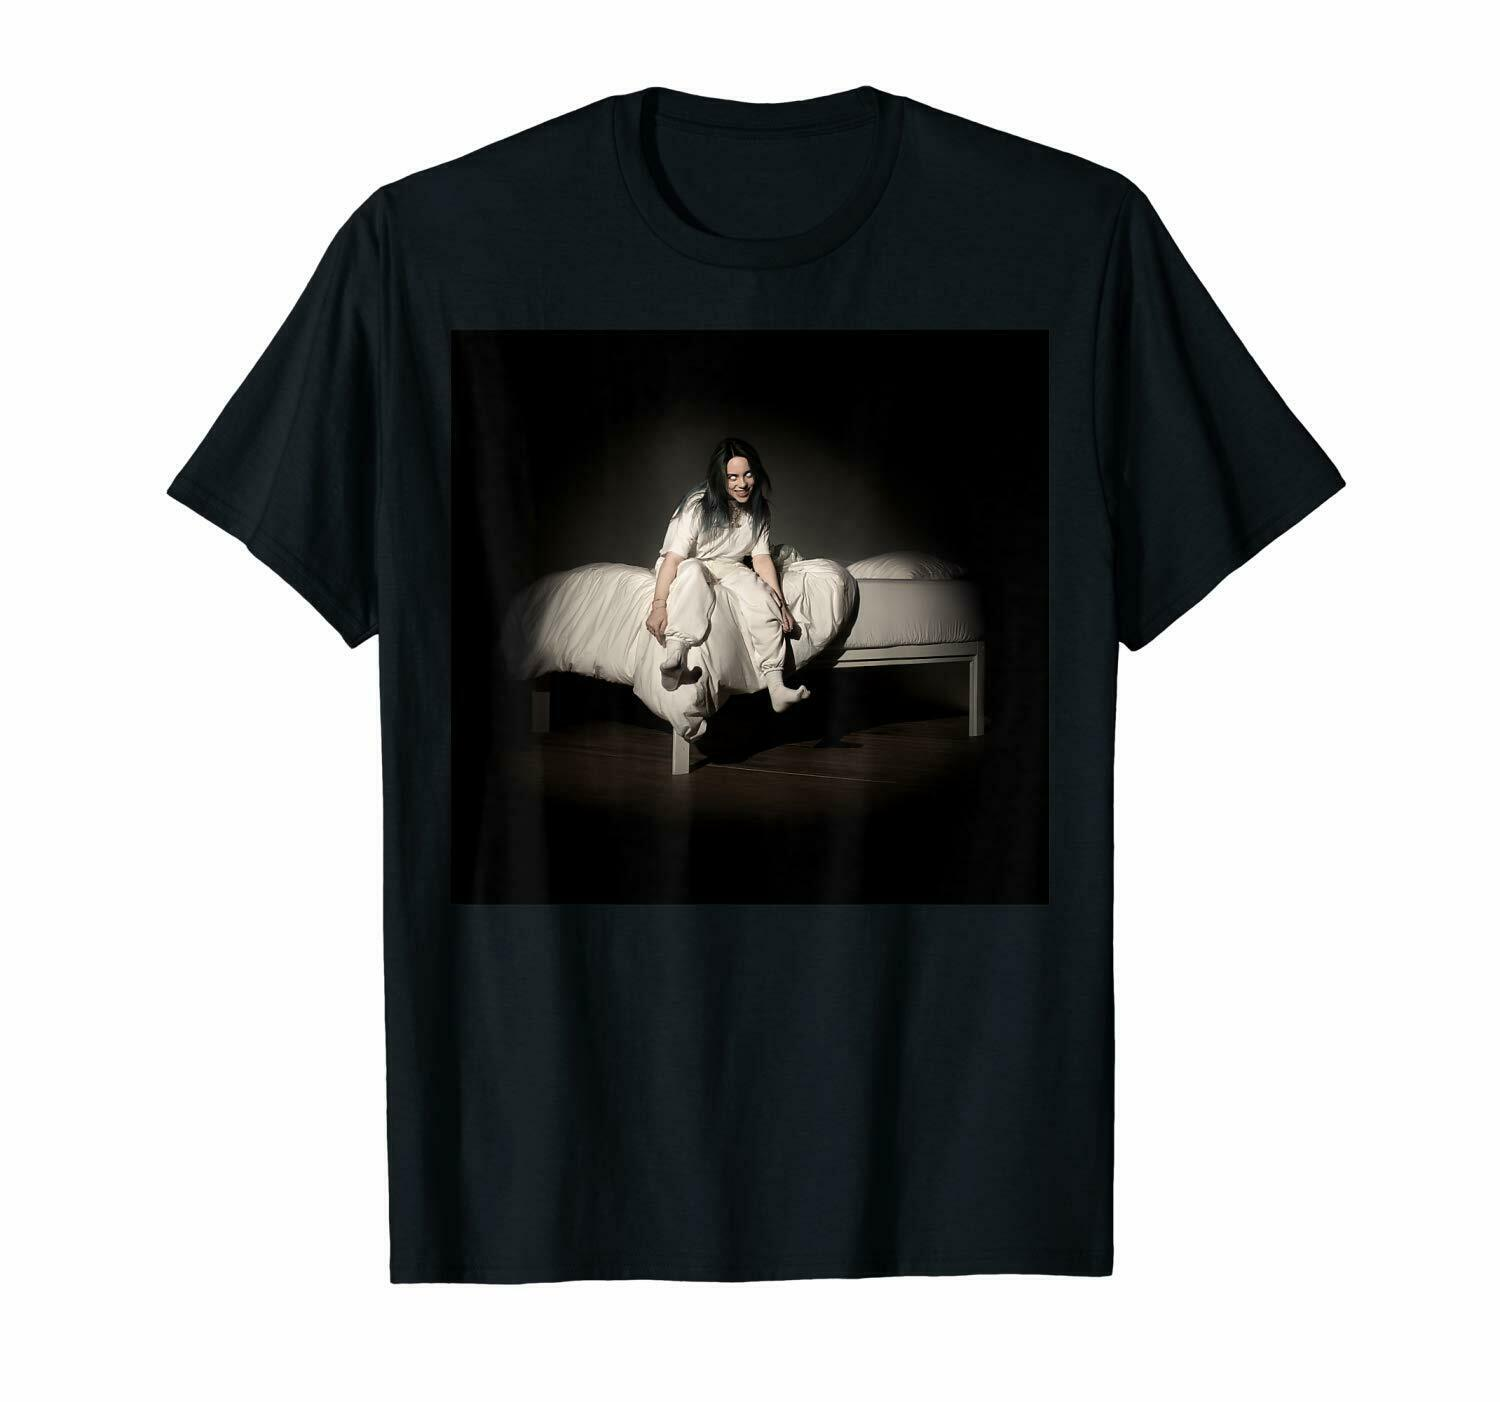 Billie Eilish When We All Fall Asleep Where Do We Go Black T Shirt For Fans Fashion Logo Printing T Shirts in T Shirts from Men 39 s Clothing